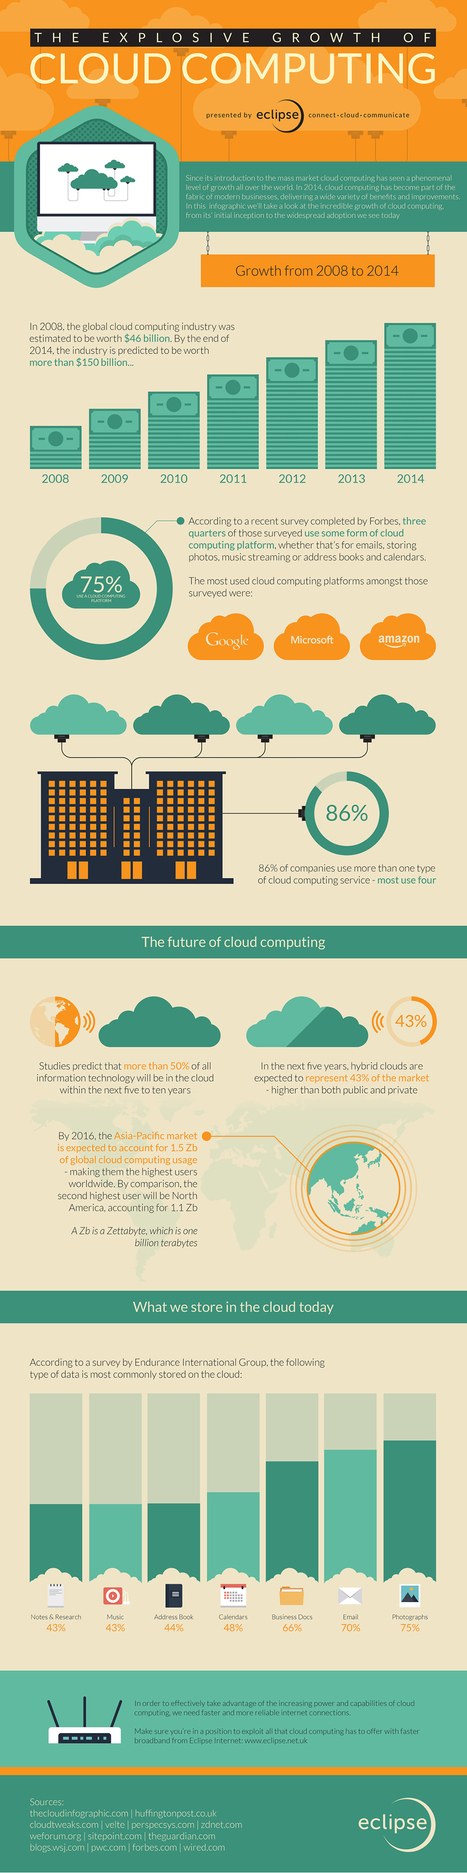 Cloud Infographic: The Explosive Growth Of The Cloud - CloudTweaks.com: Cloud Information | CompatibleOne | Scoop.it